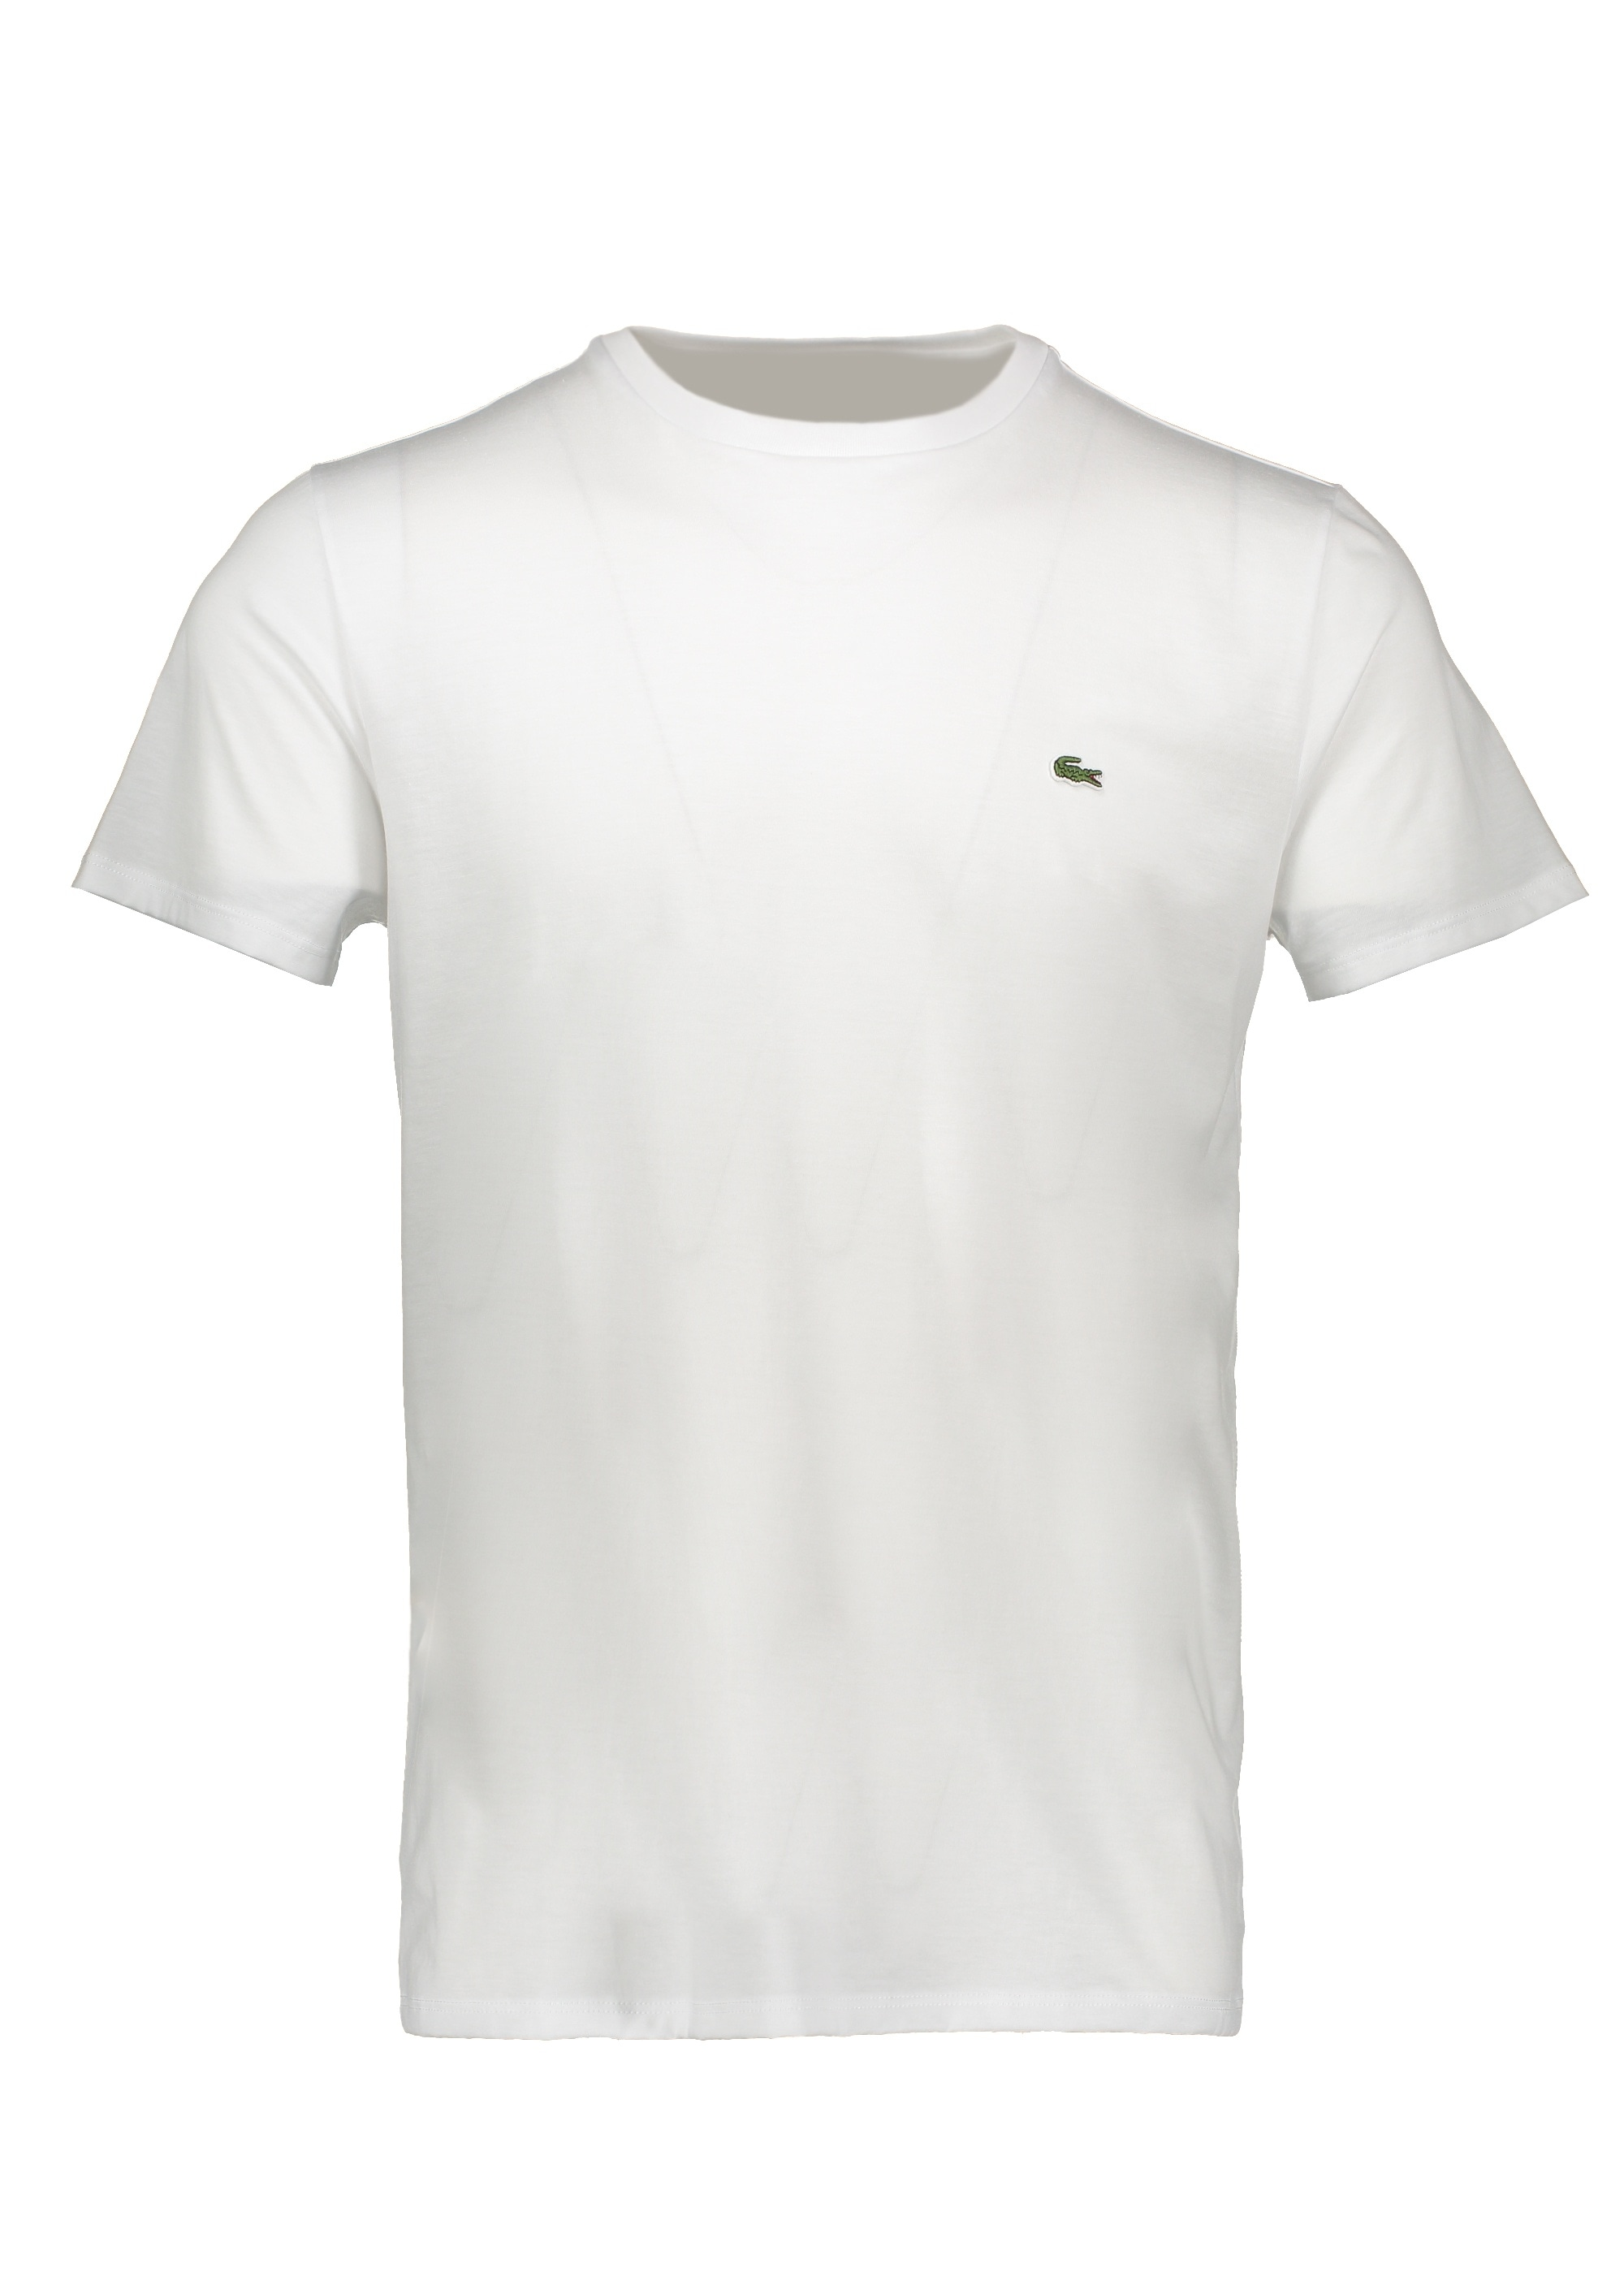 a8f5b89210 Lacoste Logo Tee - White - T-shirts from Triads UK